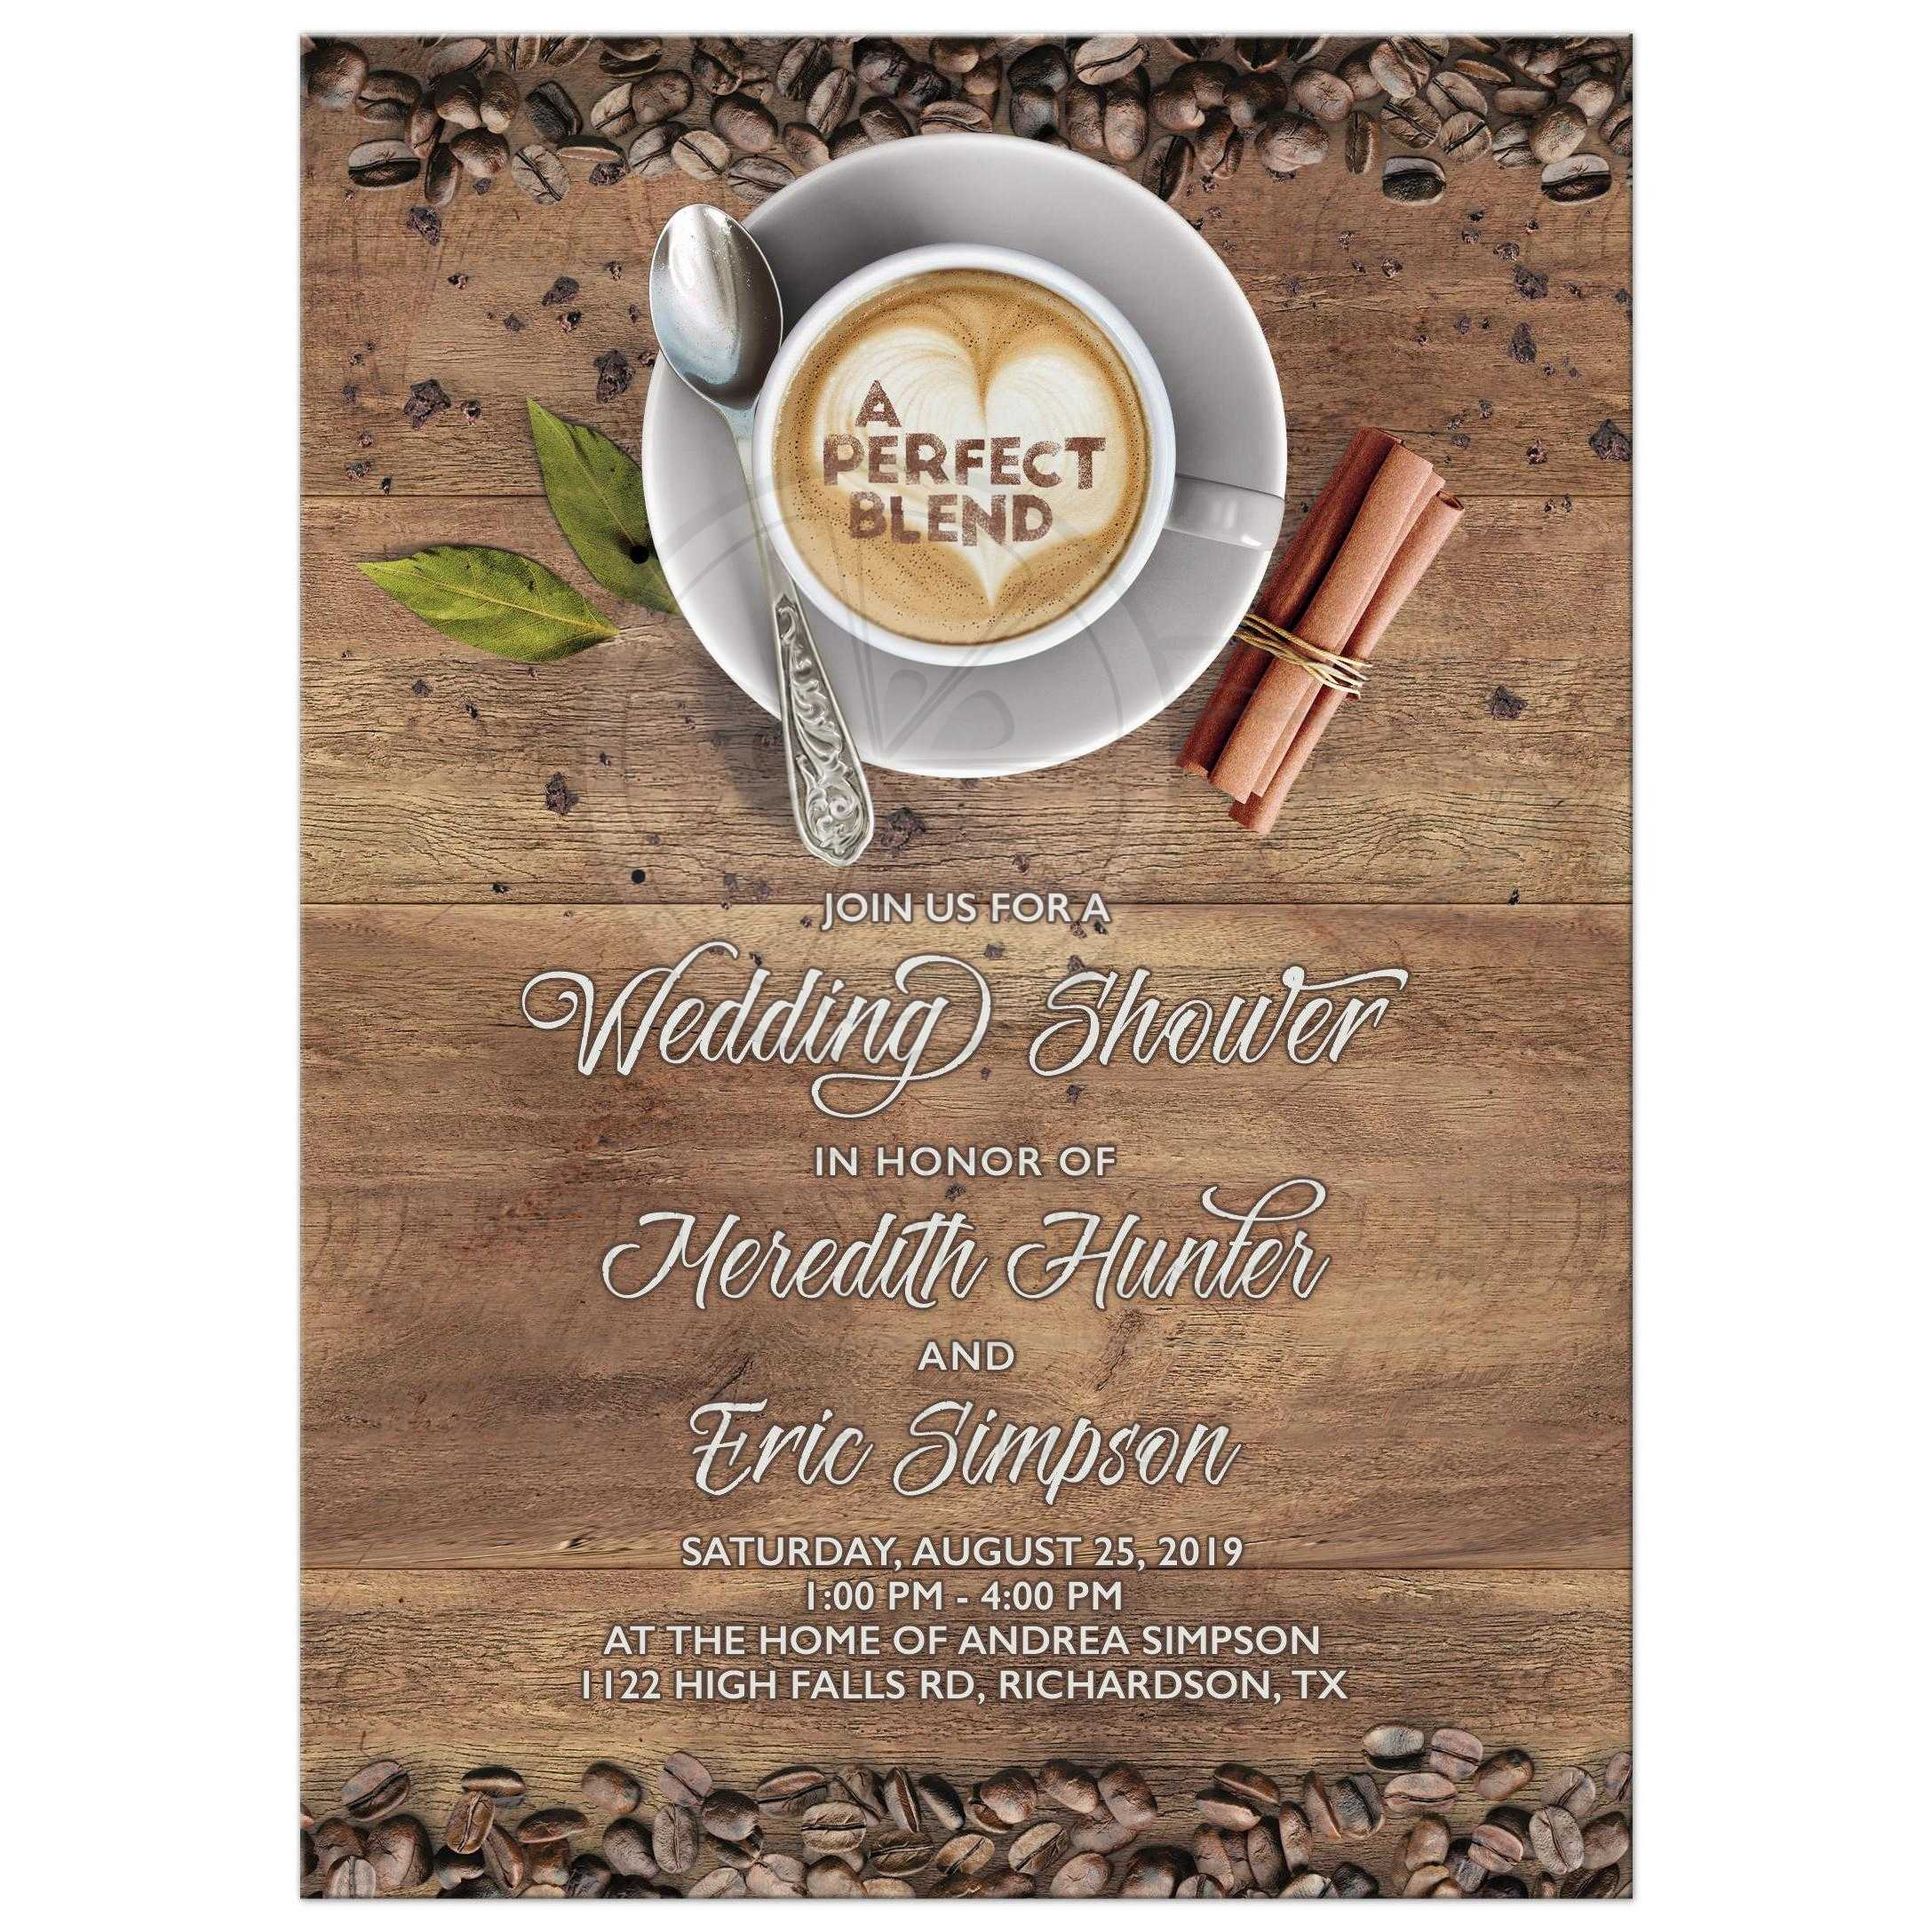 a perfect blend coffee themed wedding shower invitation for a couple shower or a bridal shower